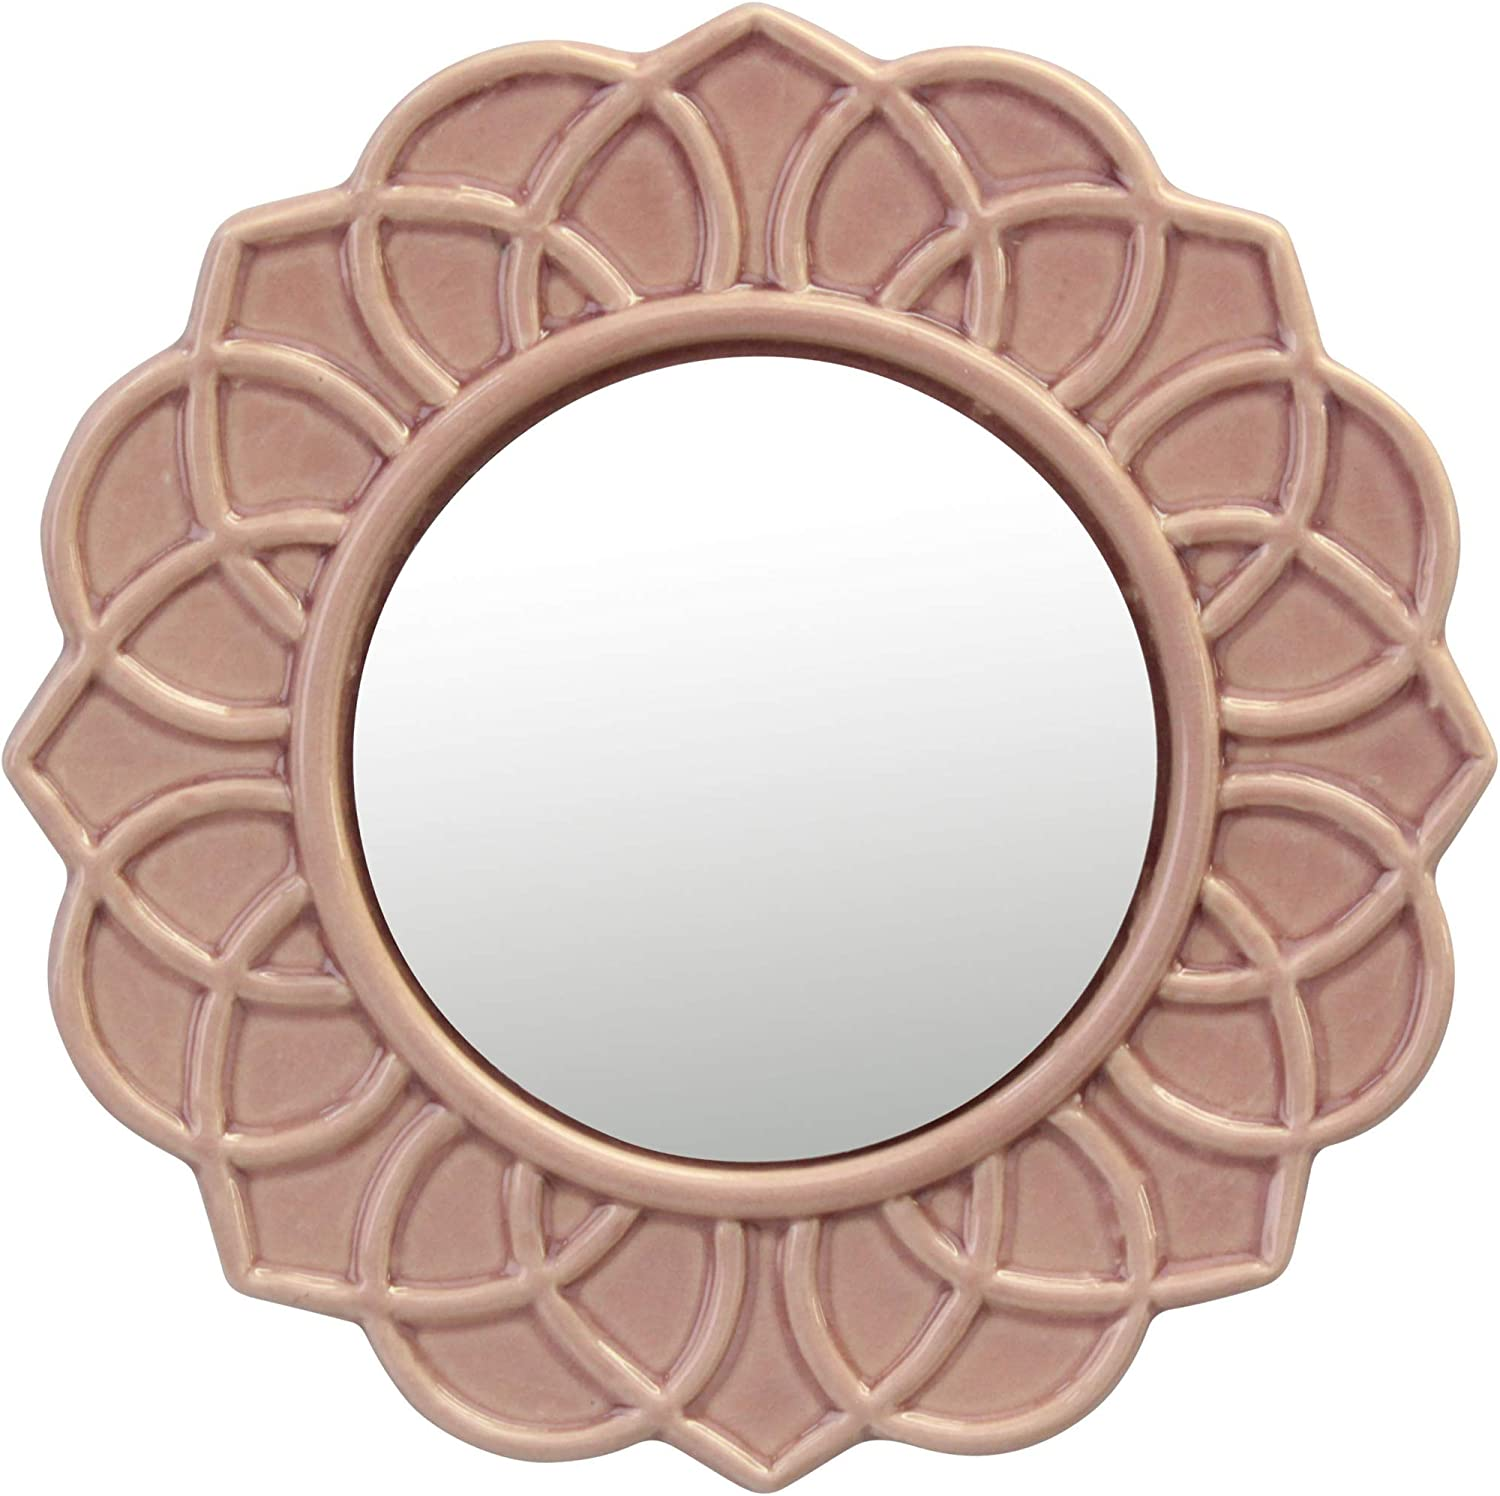 Stonebriar Dusty Rose Decorative Round Pink Floral Ceramic Wall Hanging Mirror